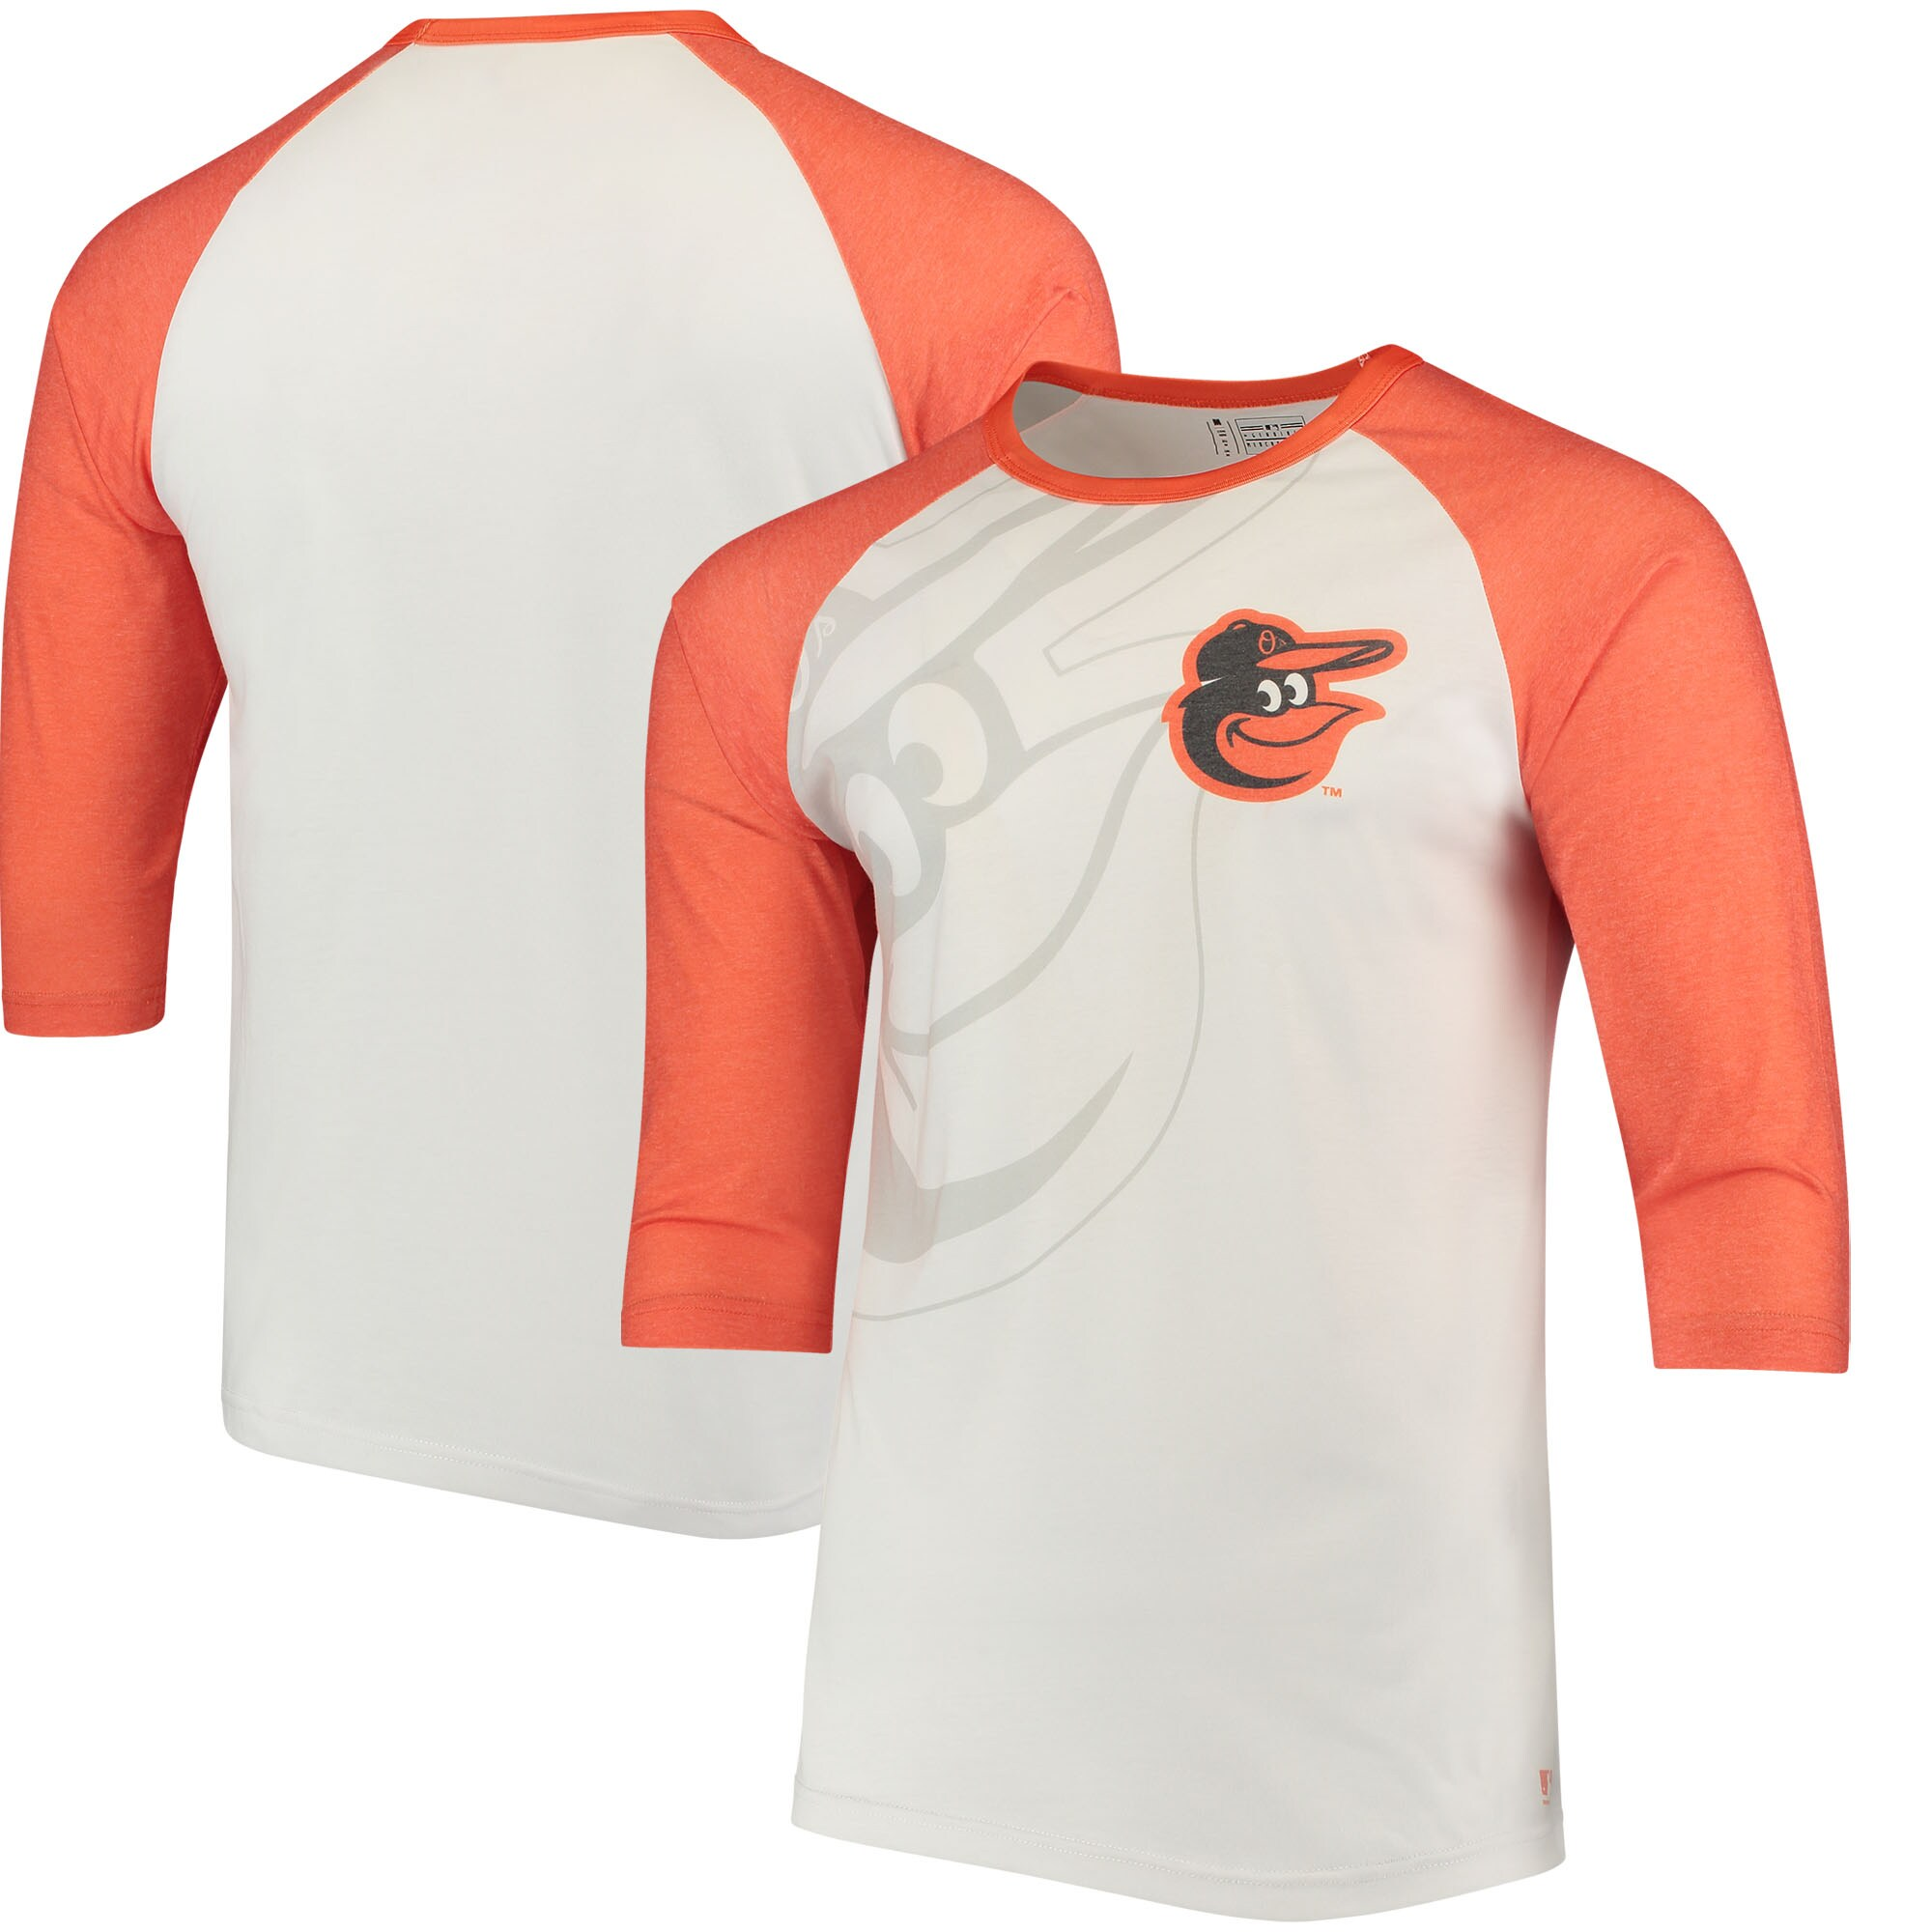 Baltimore Orioles Baseball 3/4-Sleeve Raglan T-Shirt - White/Orange